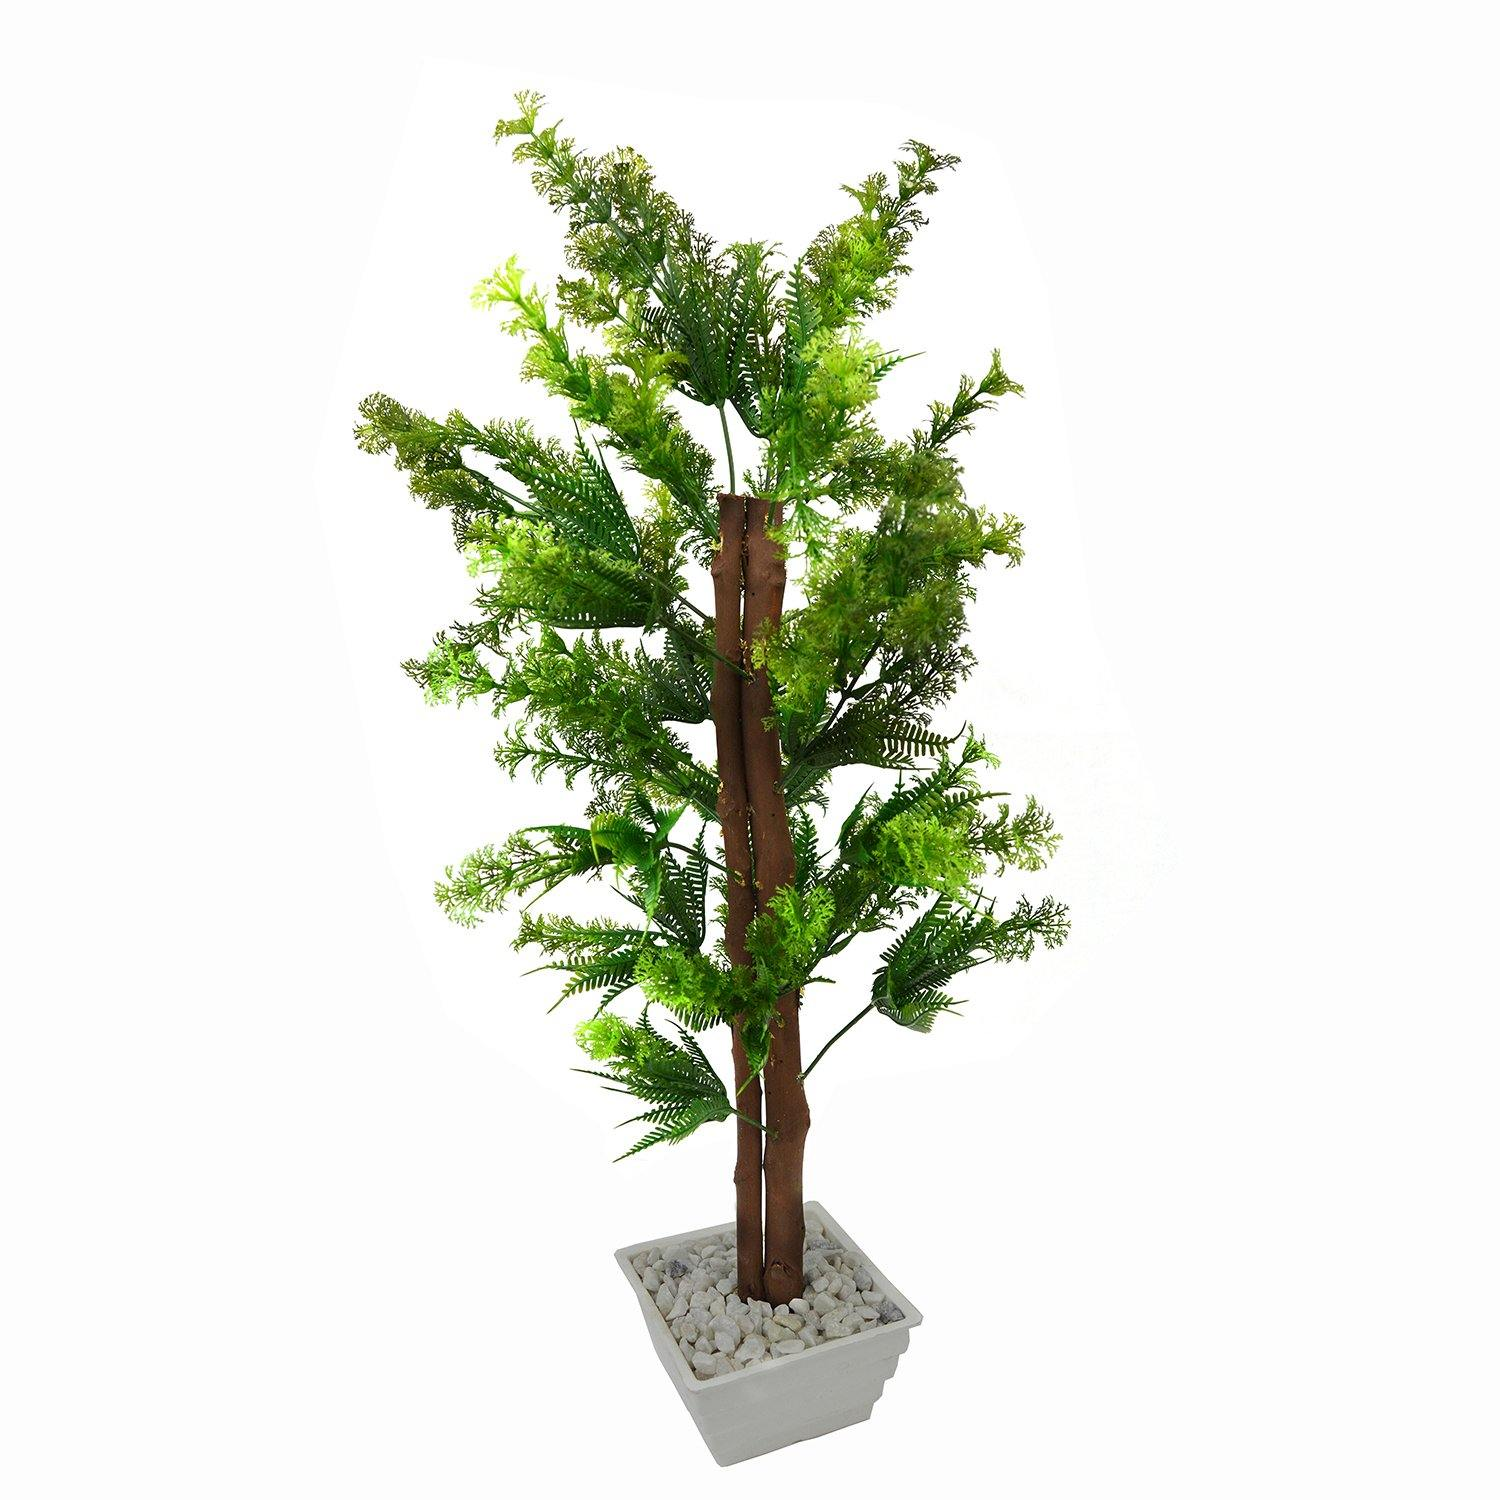 Artificial Green Corriender Bonsai Tree with White Square pot - Fancy Mart